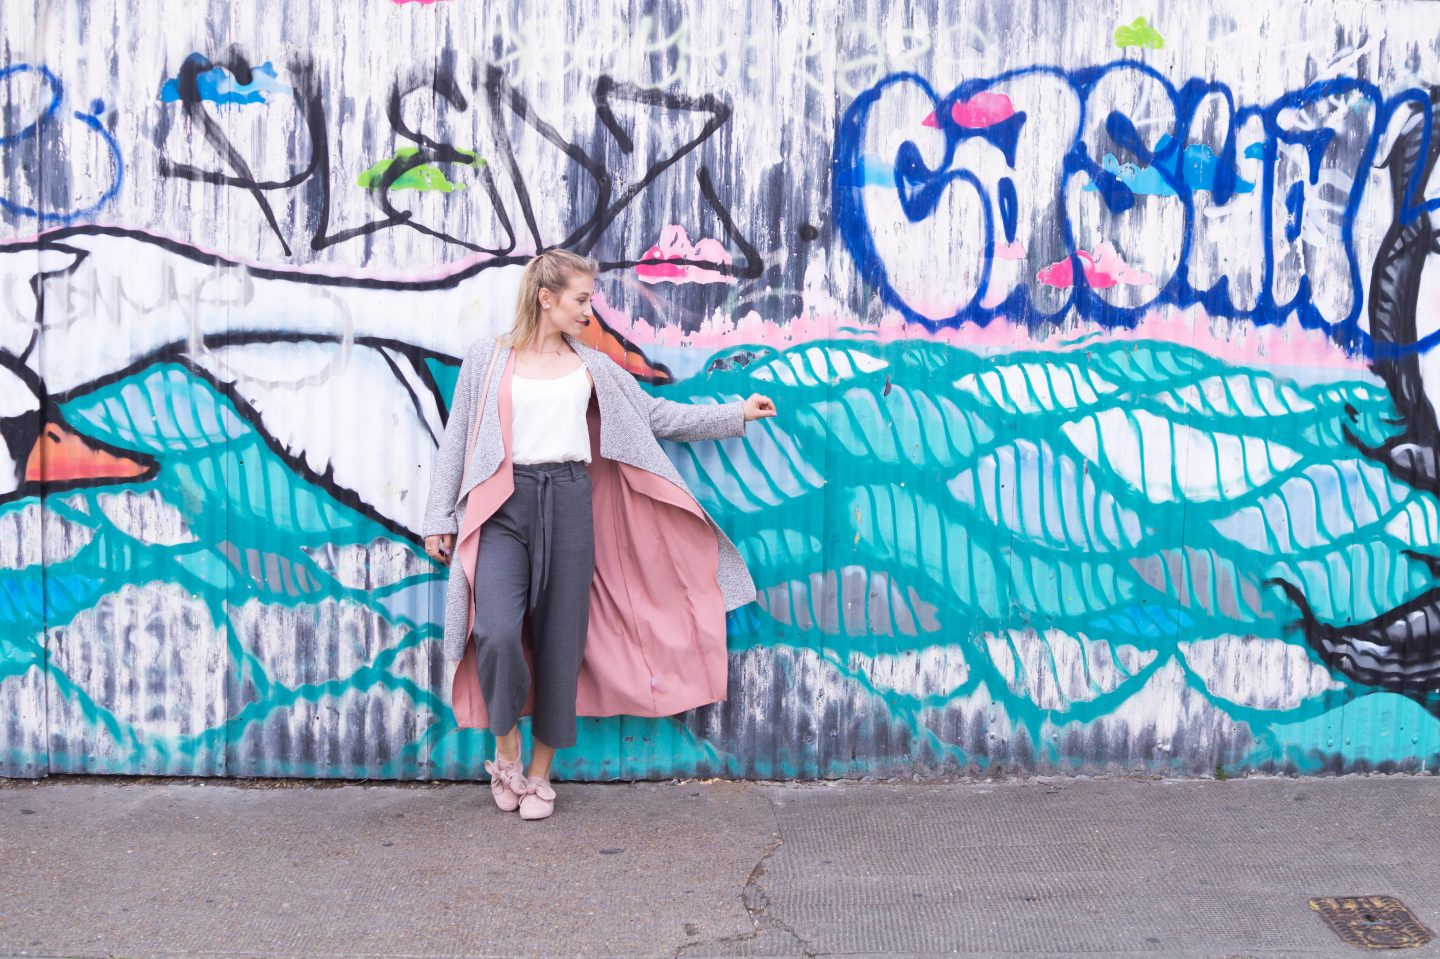 Culottes, Graffities & Three Things to Do in Shoreditch | London Love #6